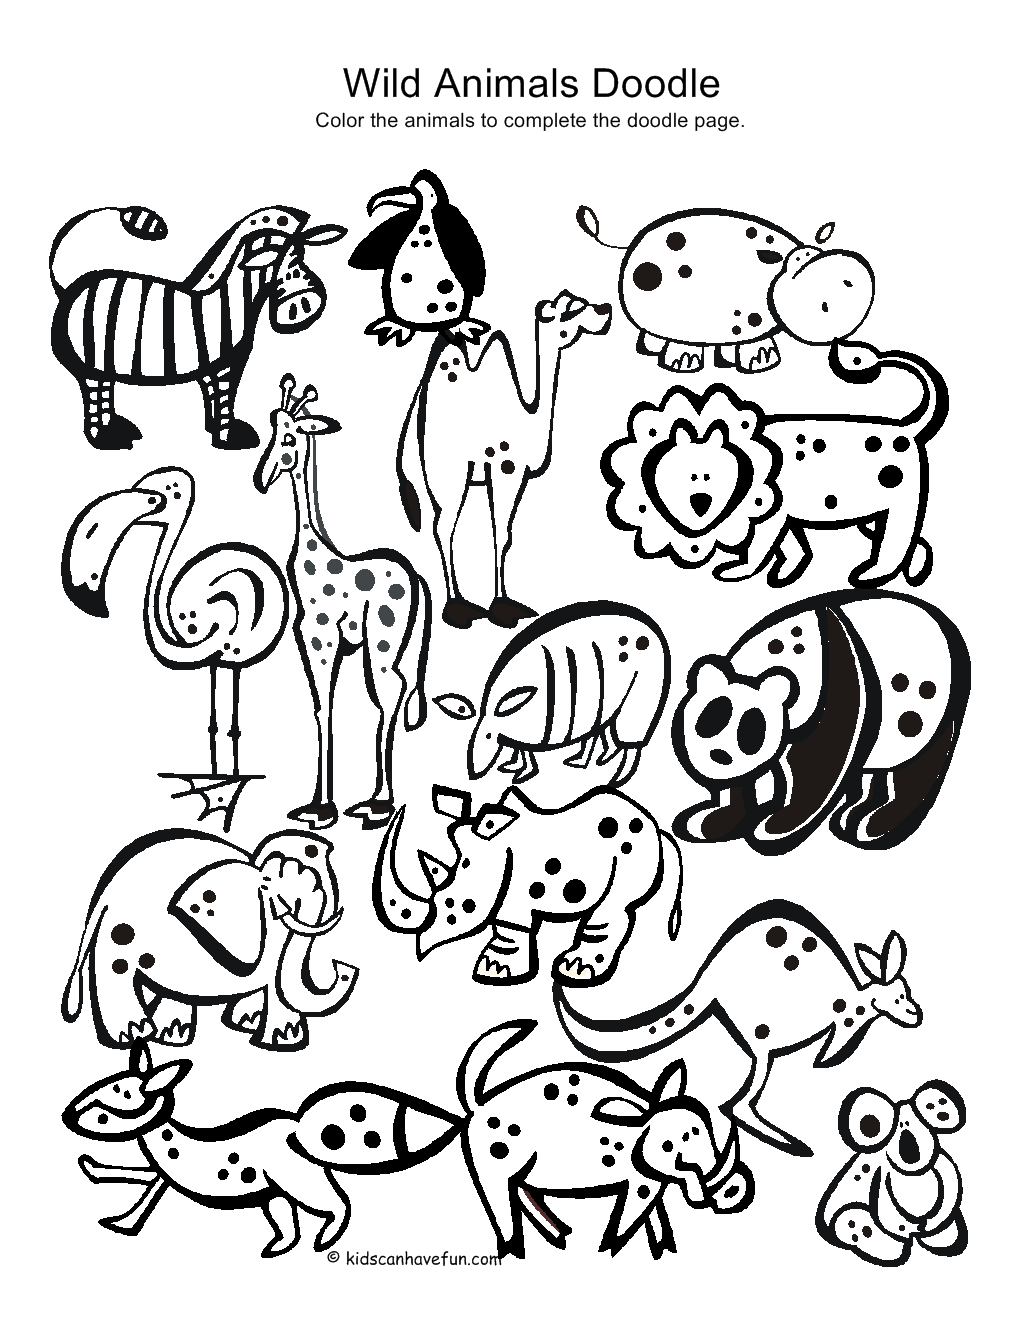 Wild Animals Doodle Print On Sticker Paper Kids Can Color It In Animal Doodles Animal Coloring Pages Drawing For Kids [ 1319 x 1019 Pixel ]